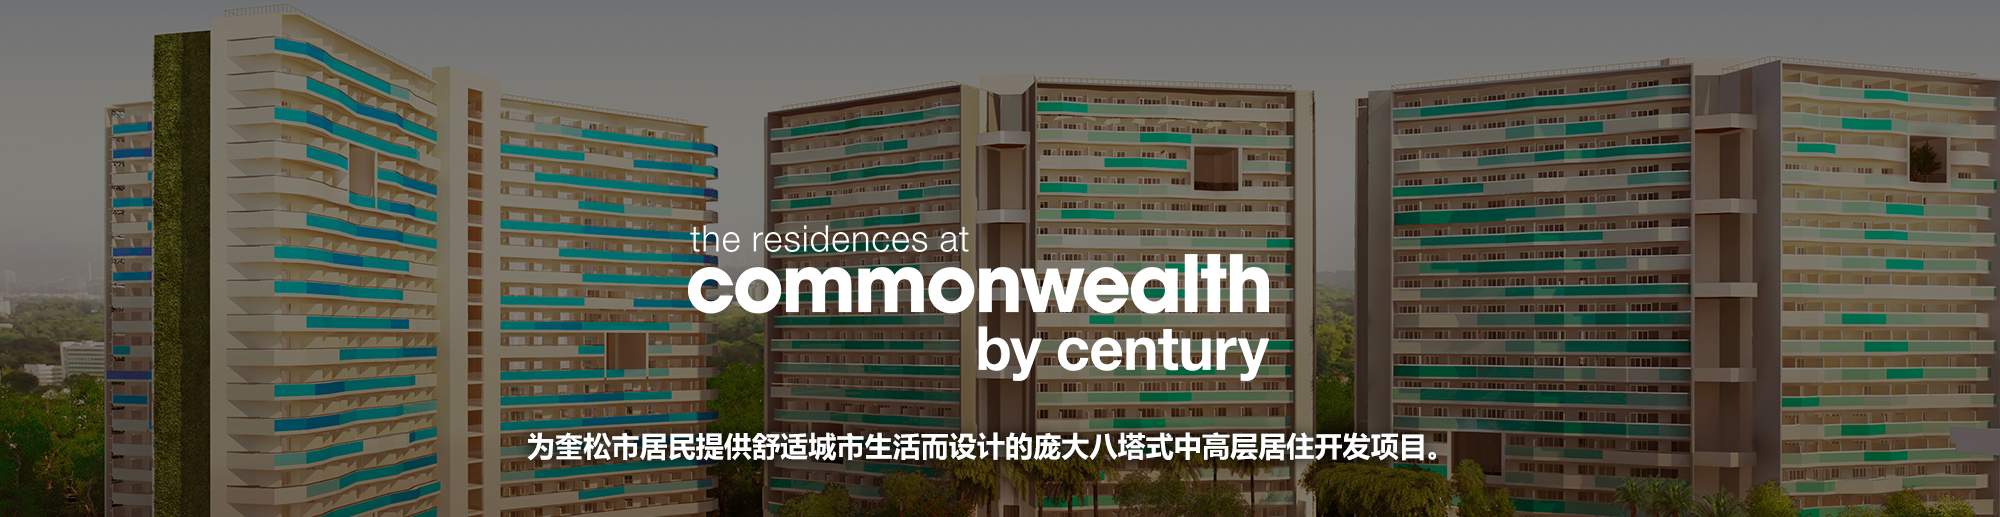 the residences at commonwealth by century slider